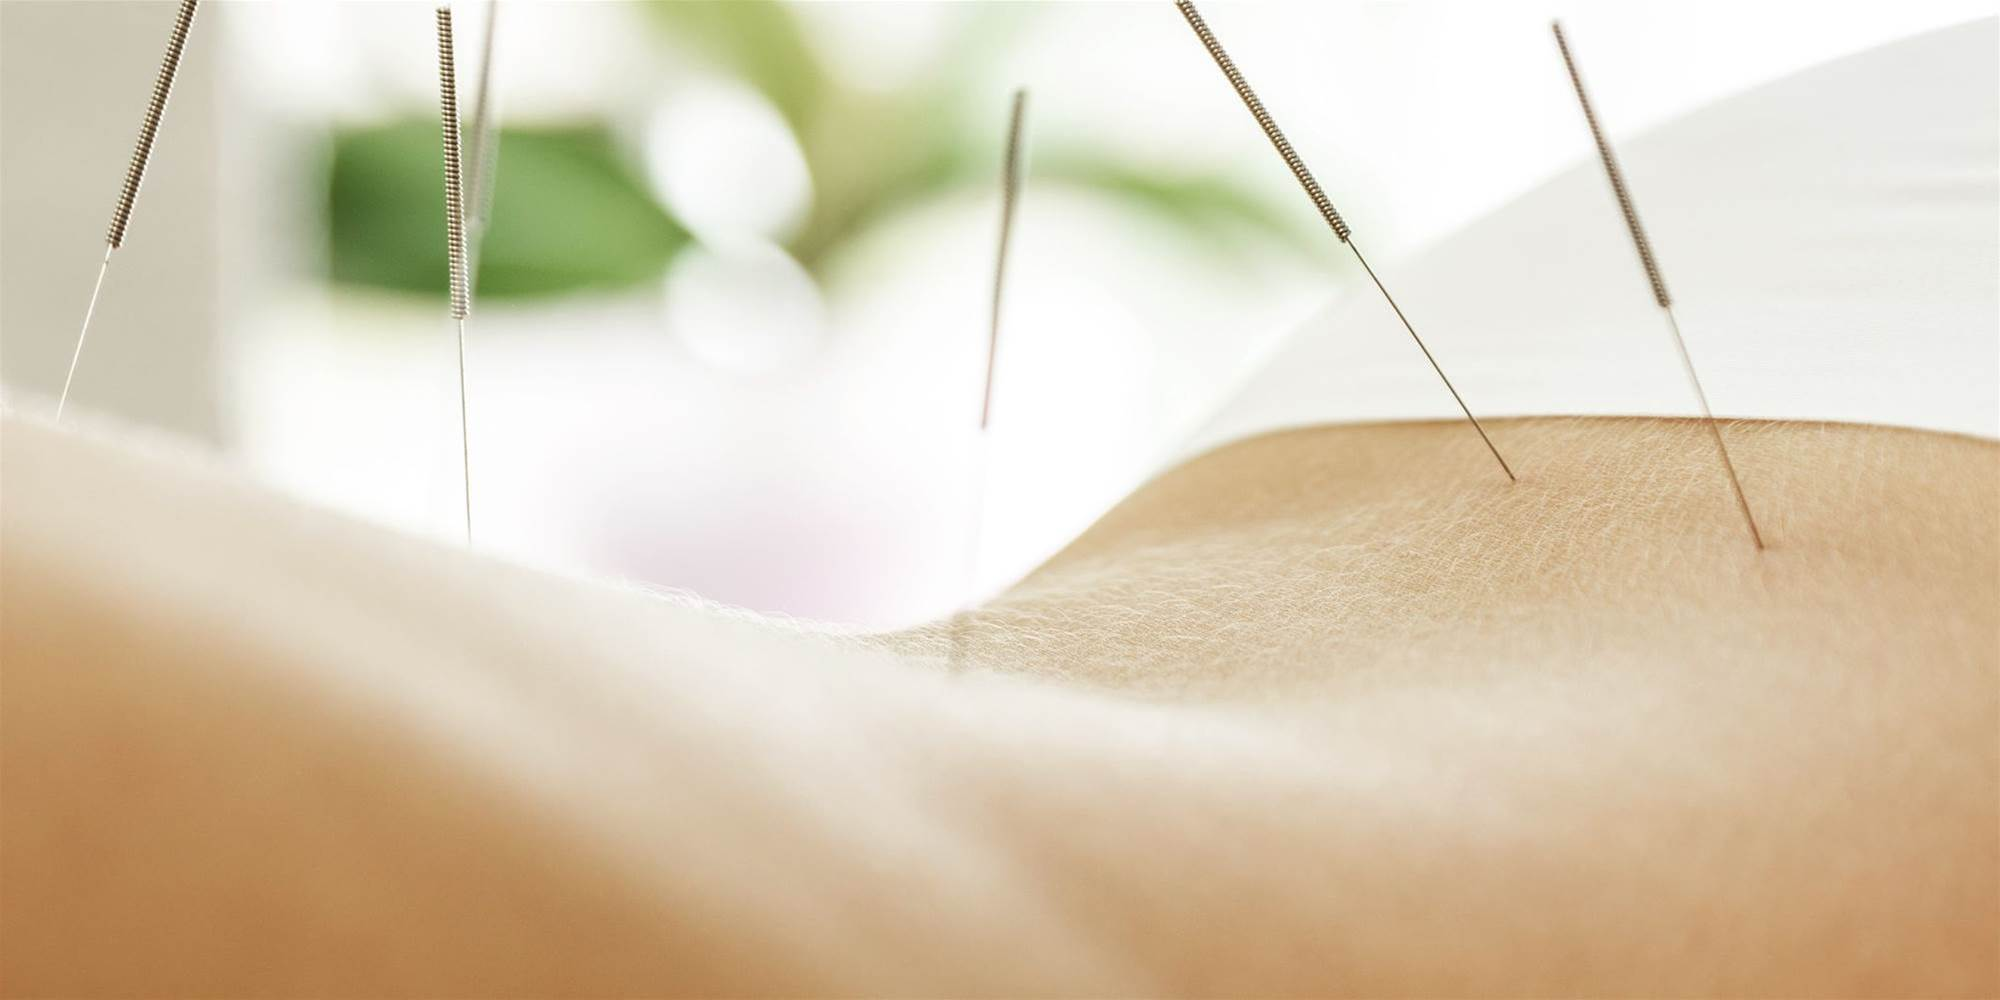 Acupuncture for Weight Loss: Does It Work?